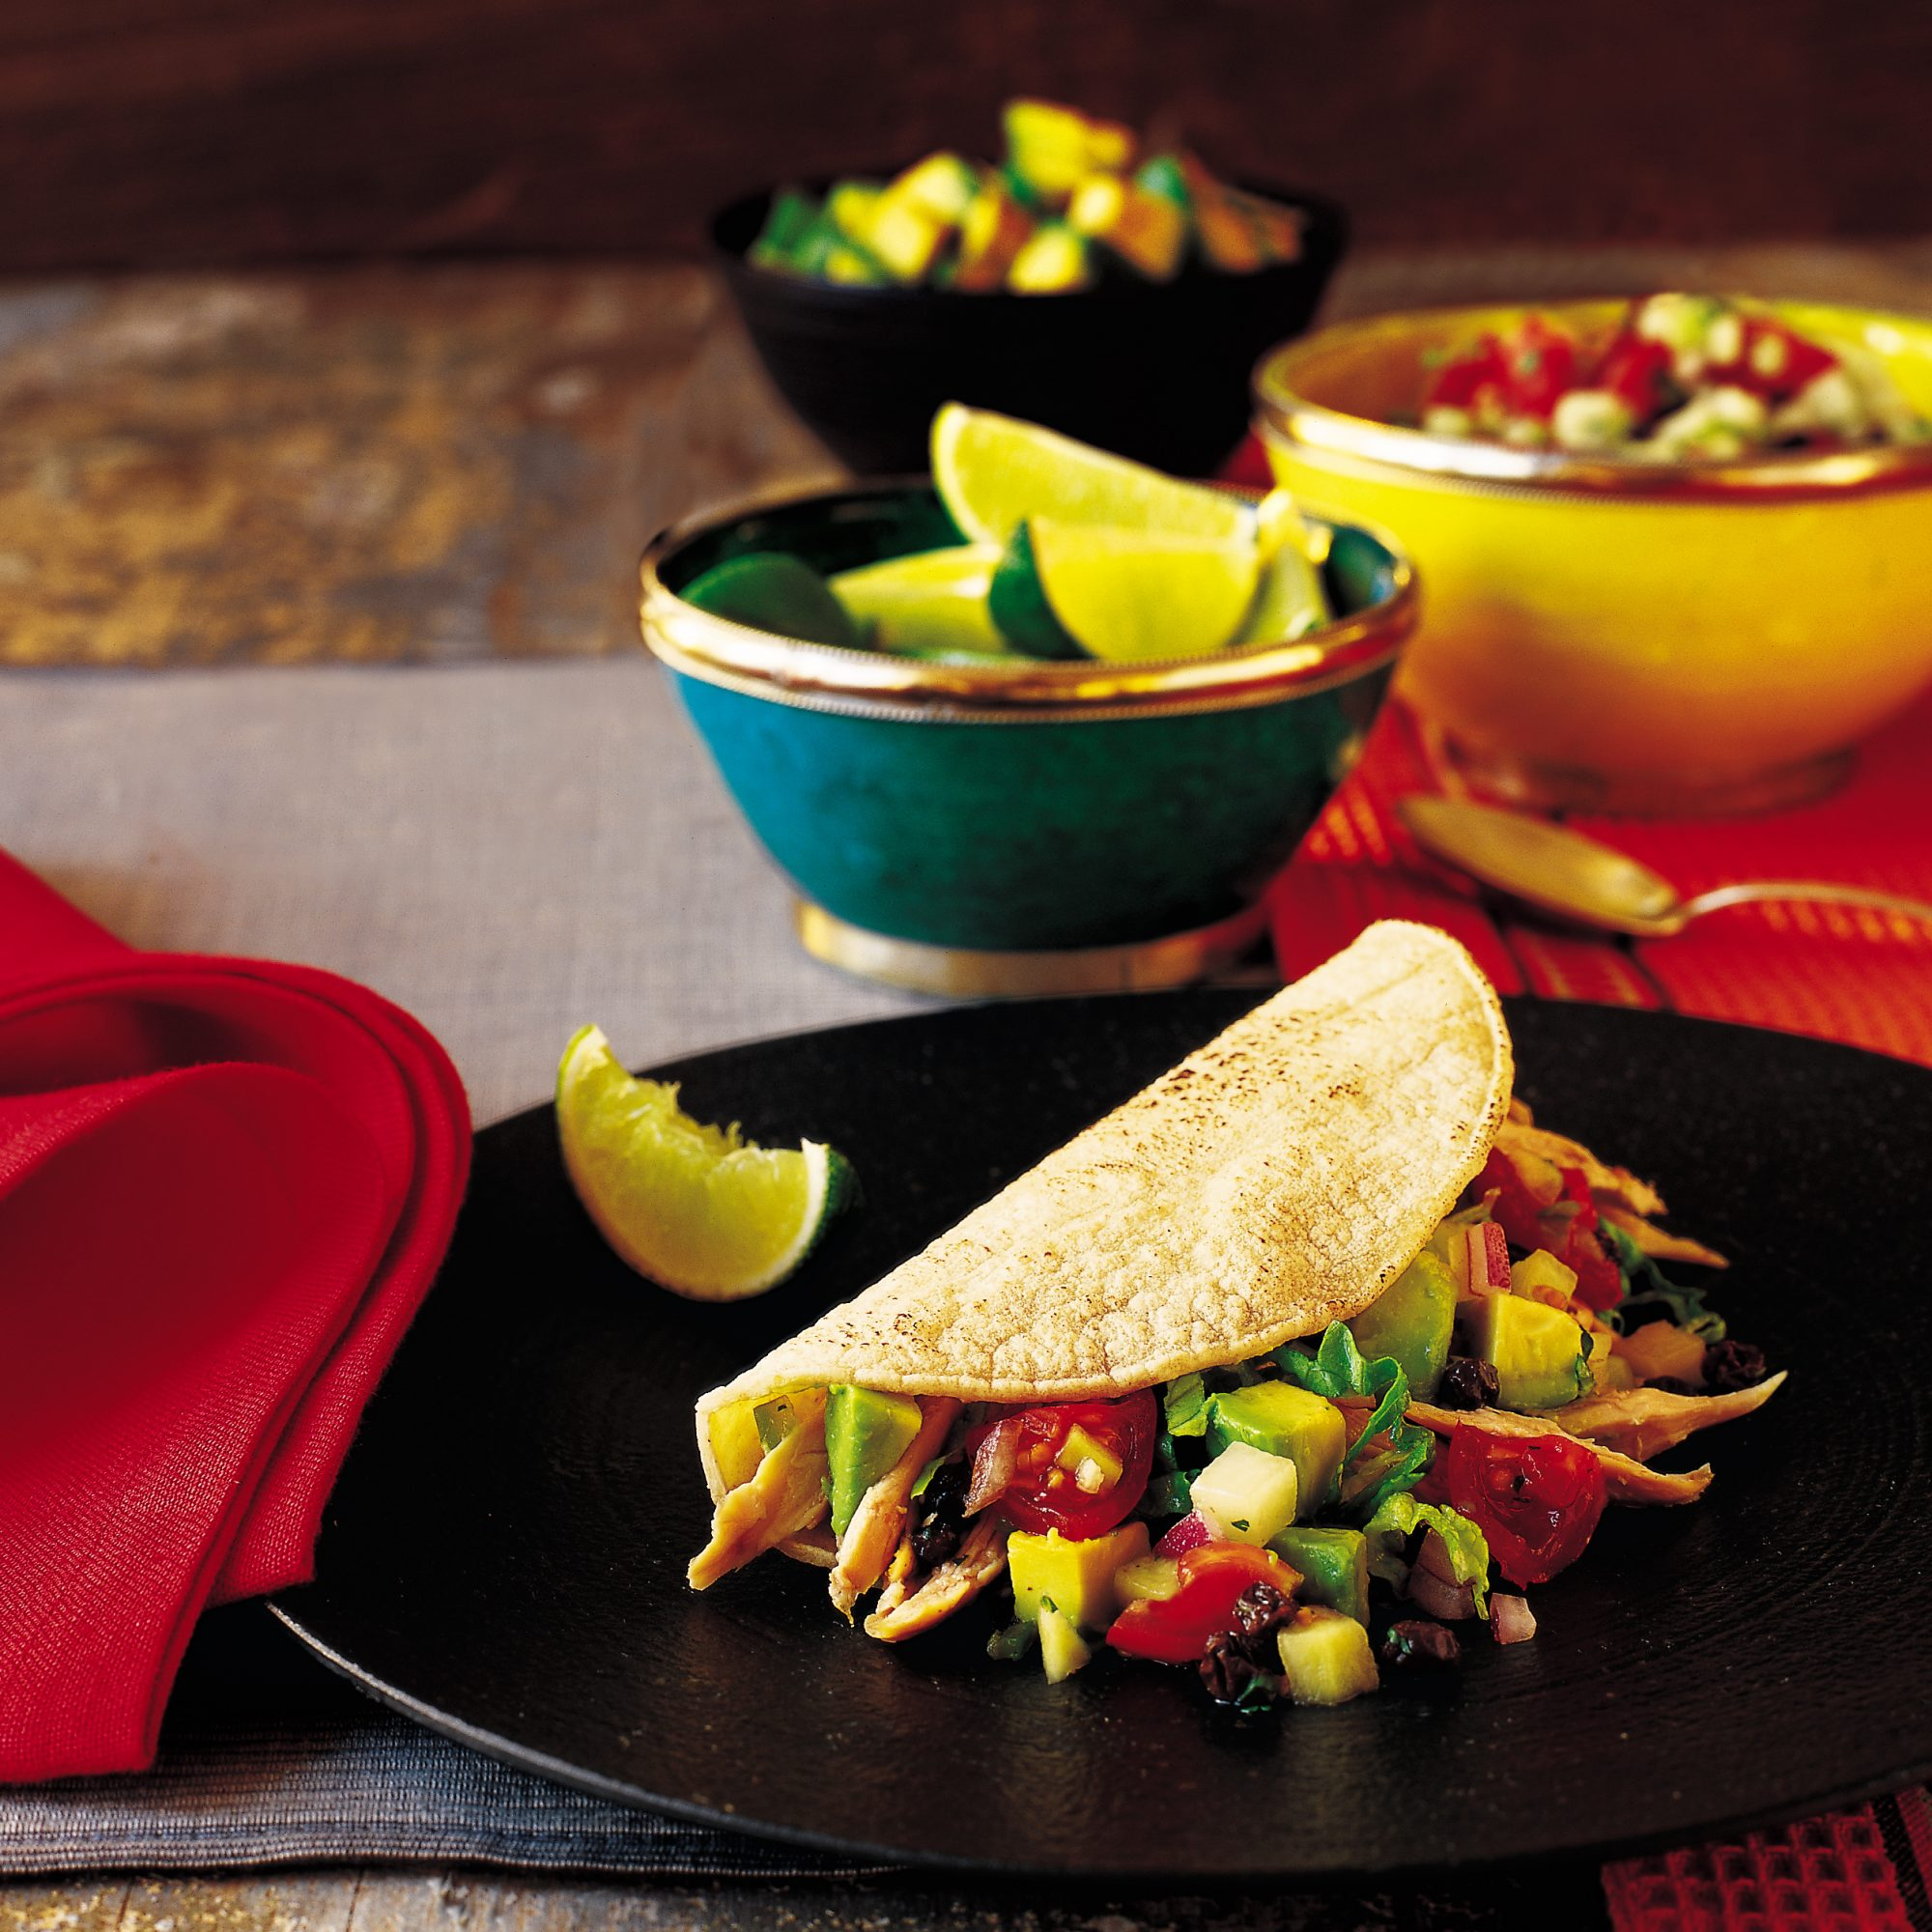 Spiced Chicken Tacos with Crispy Skins